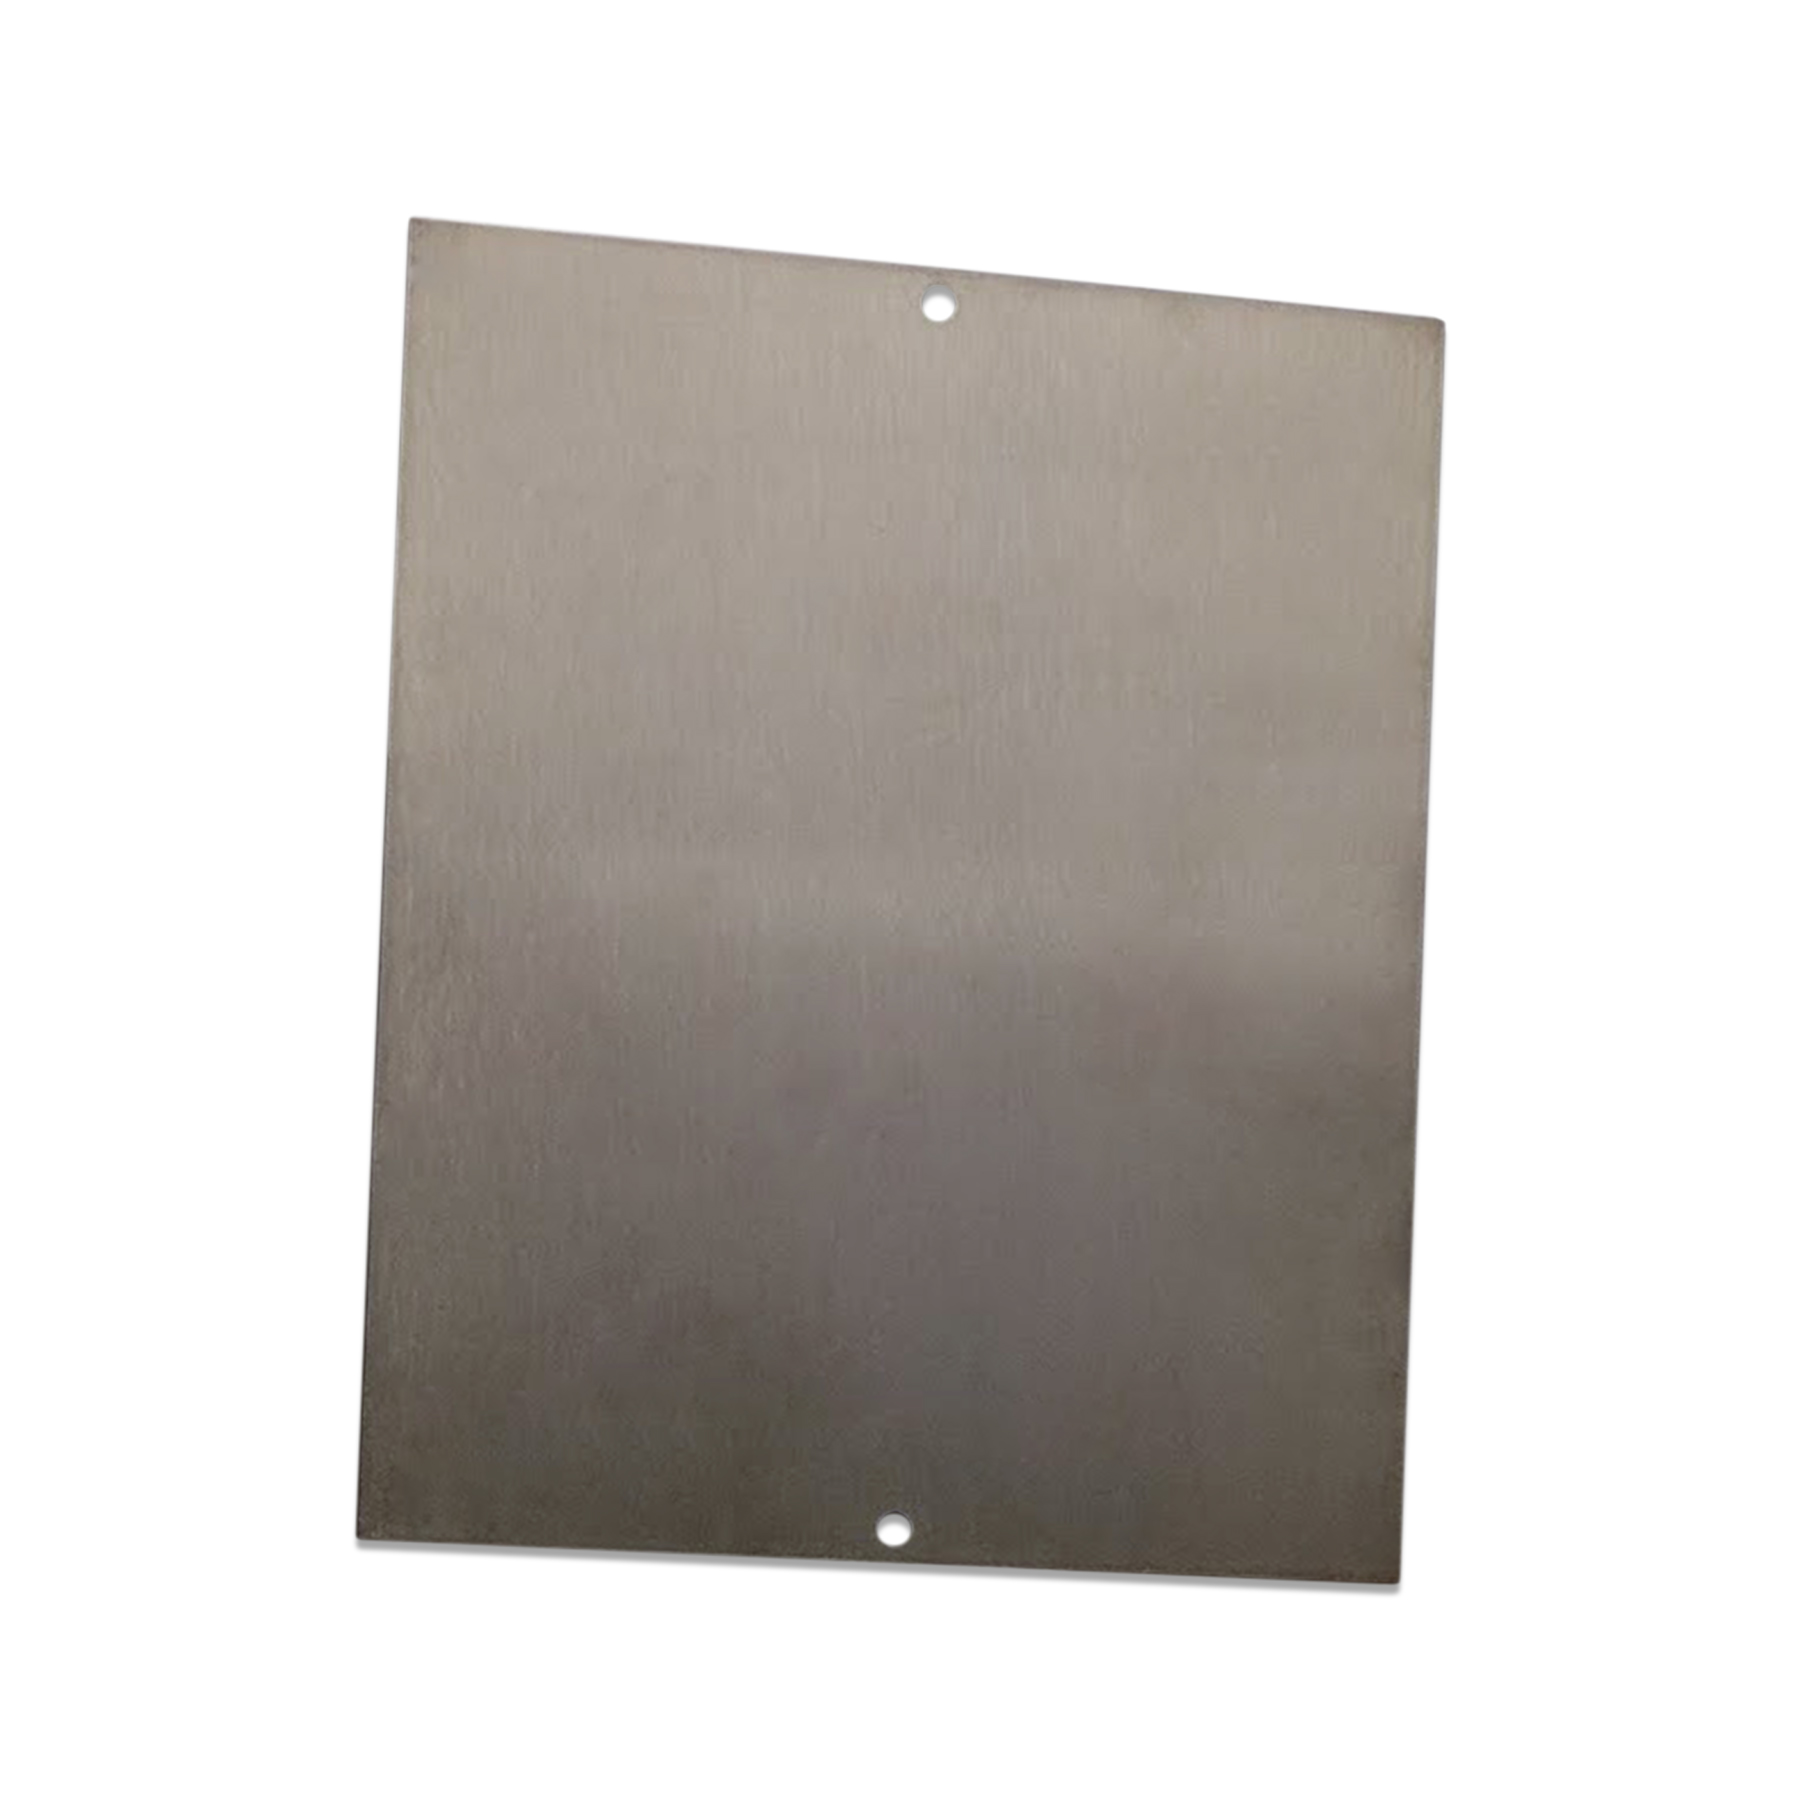 DISC Stainless Steel Thermostat Access Cover